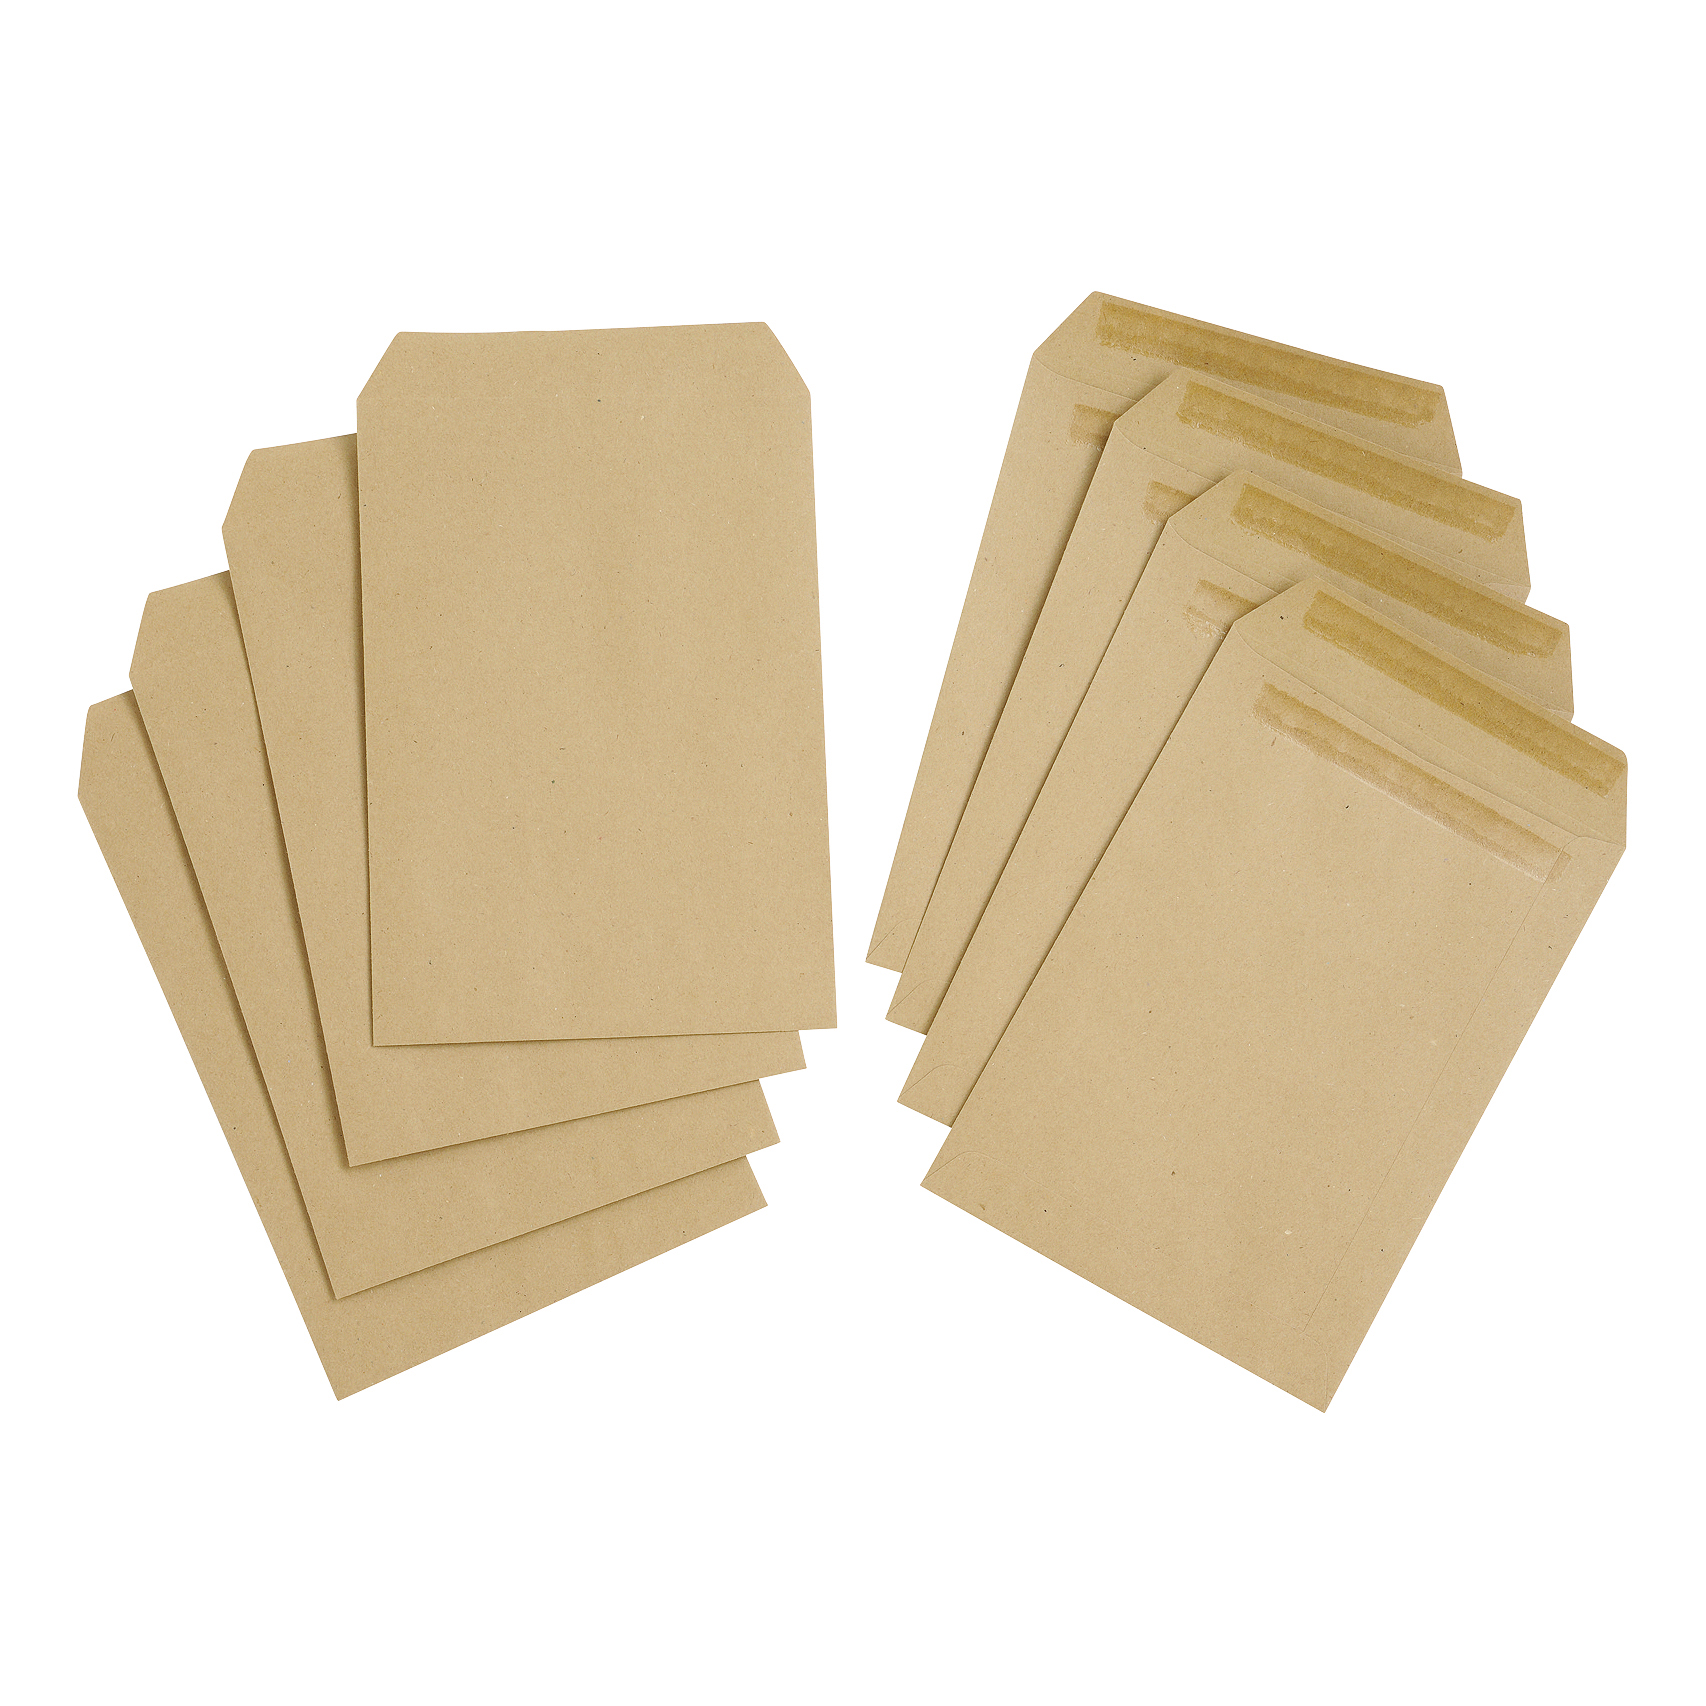 C5 5 Star Value Envelope C5 Pocket Self Seal 80gsm Plain Manilla Pack 500